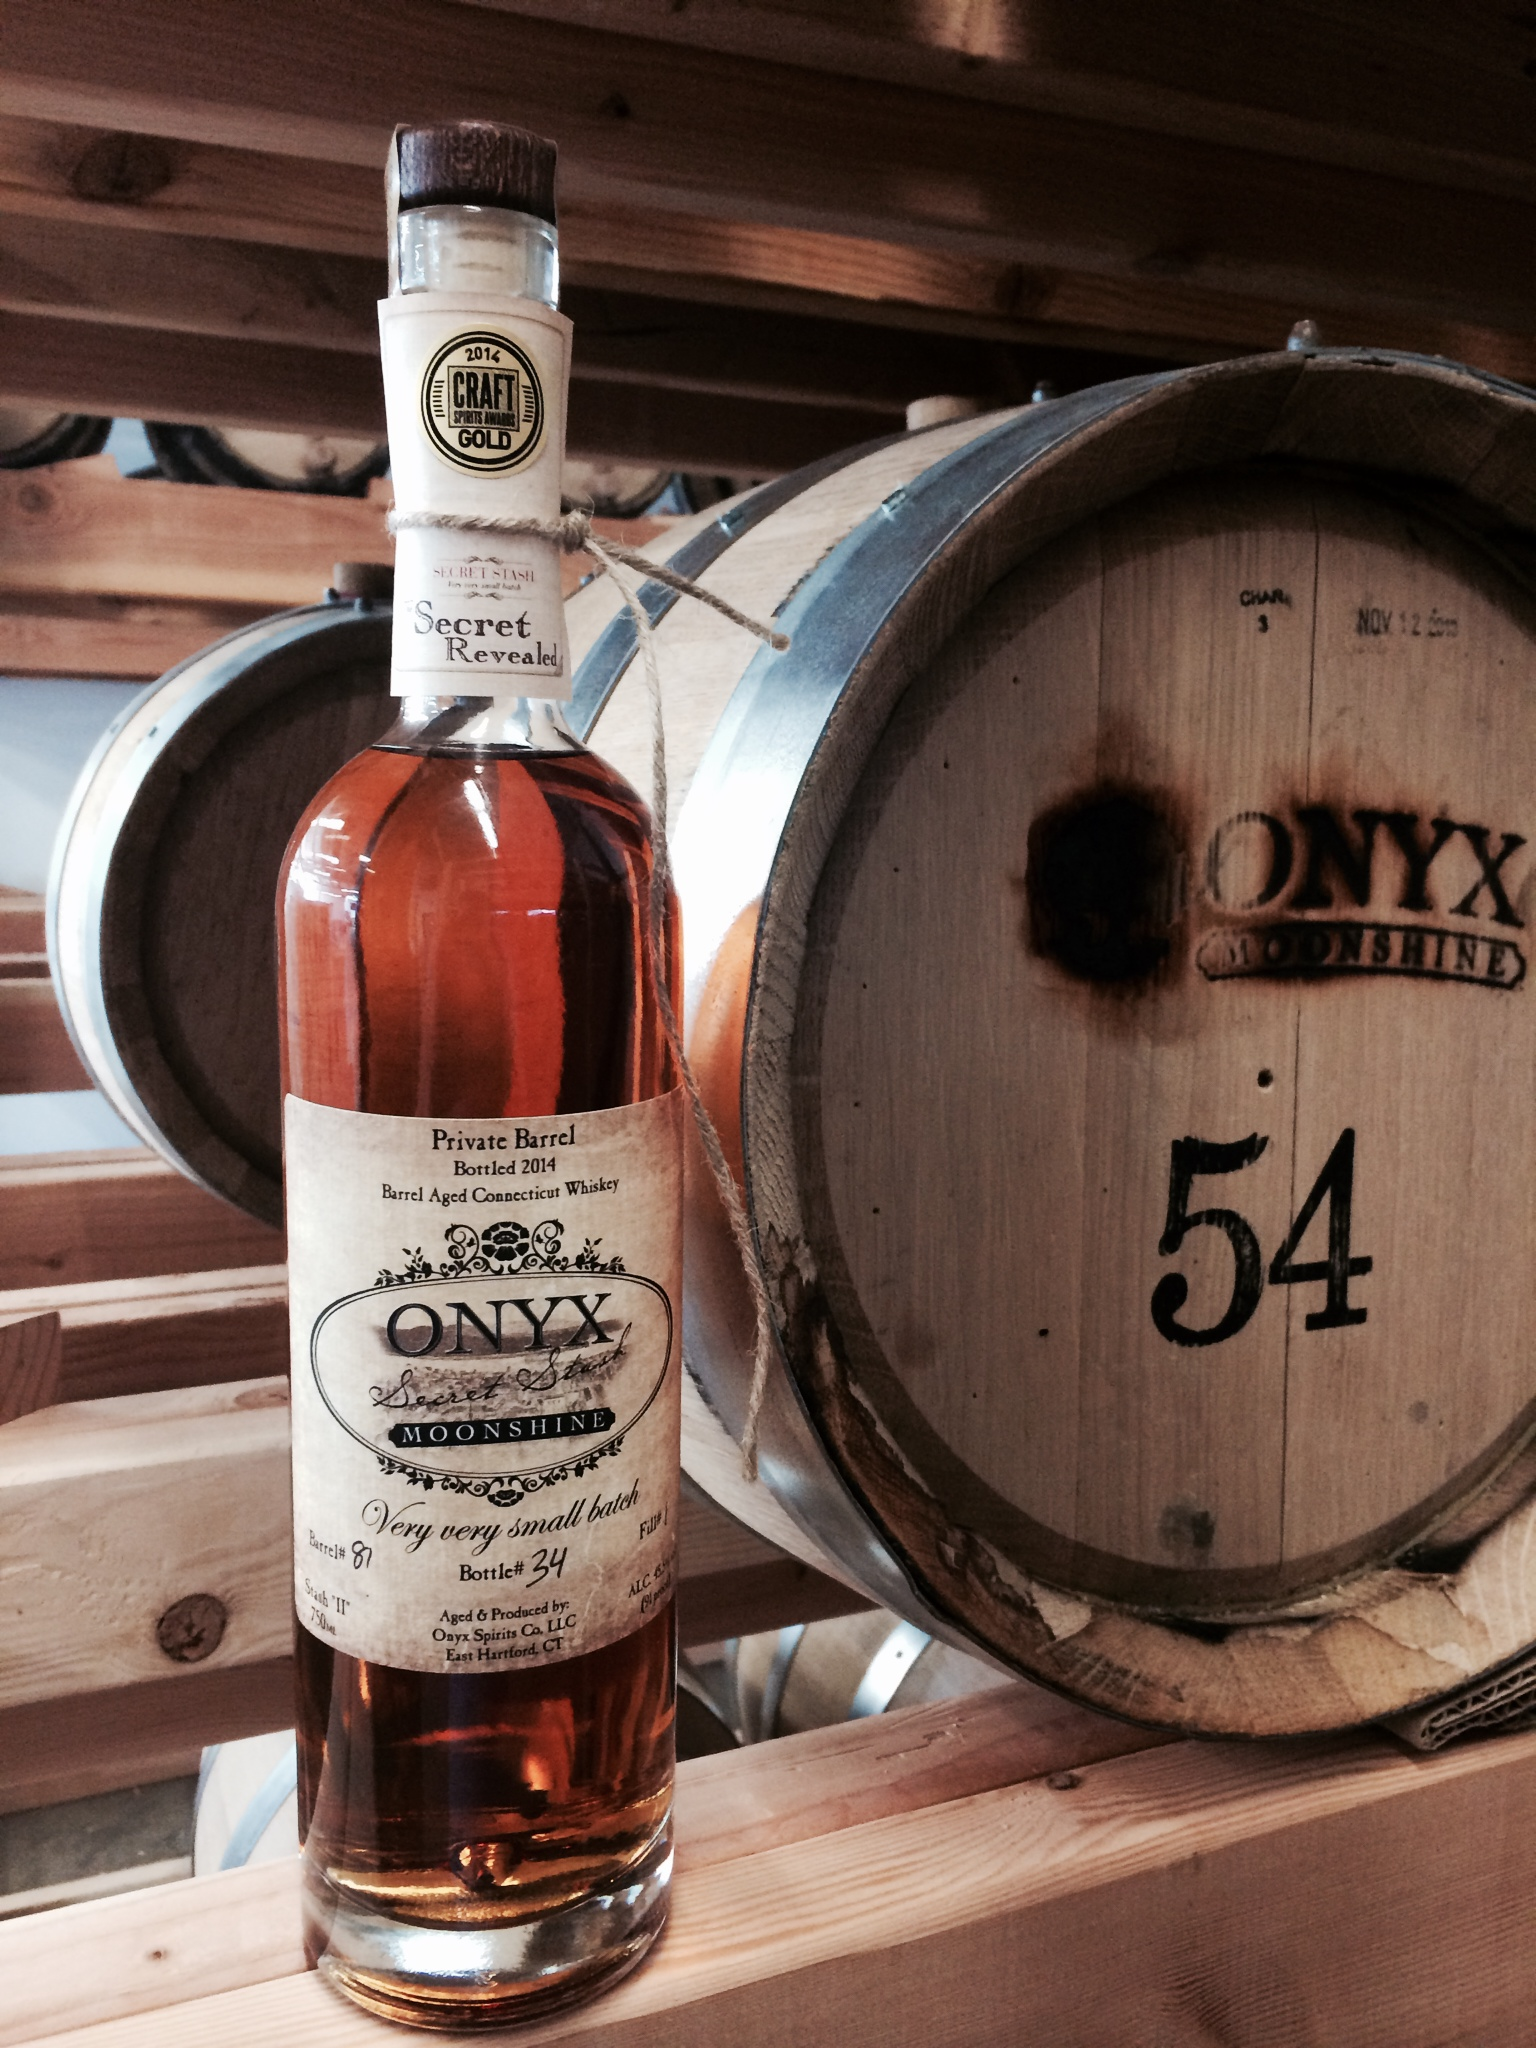 Onyx Spirits Company Re-releases Whiskey for Fourth of July